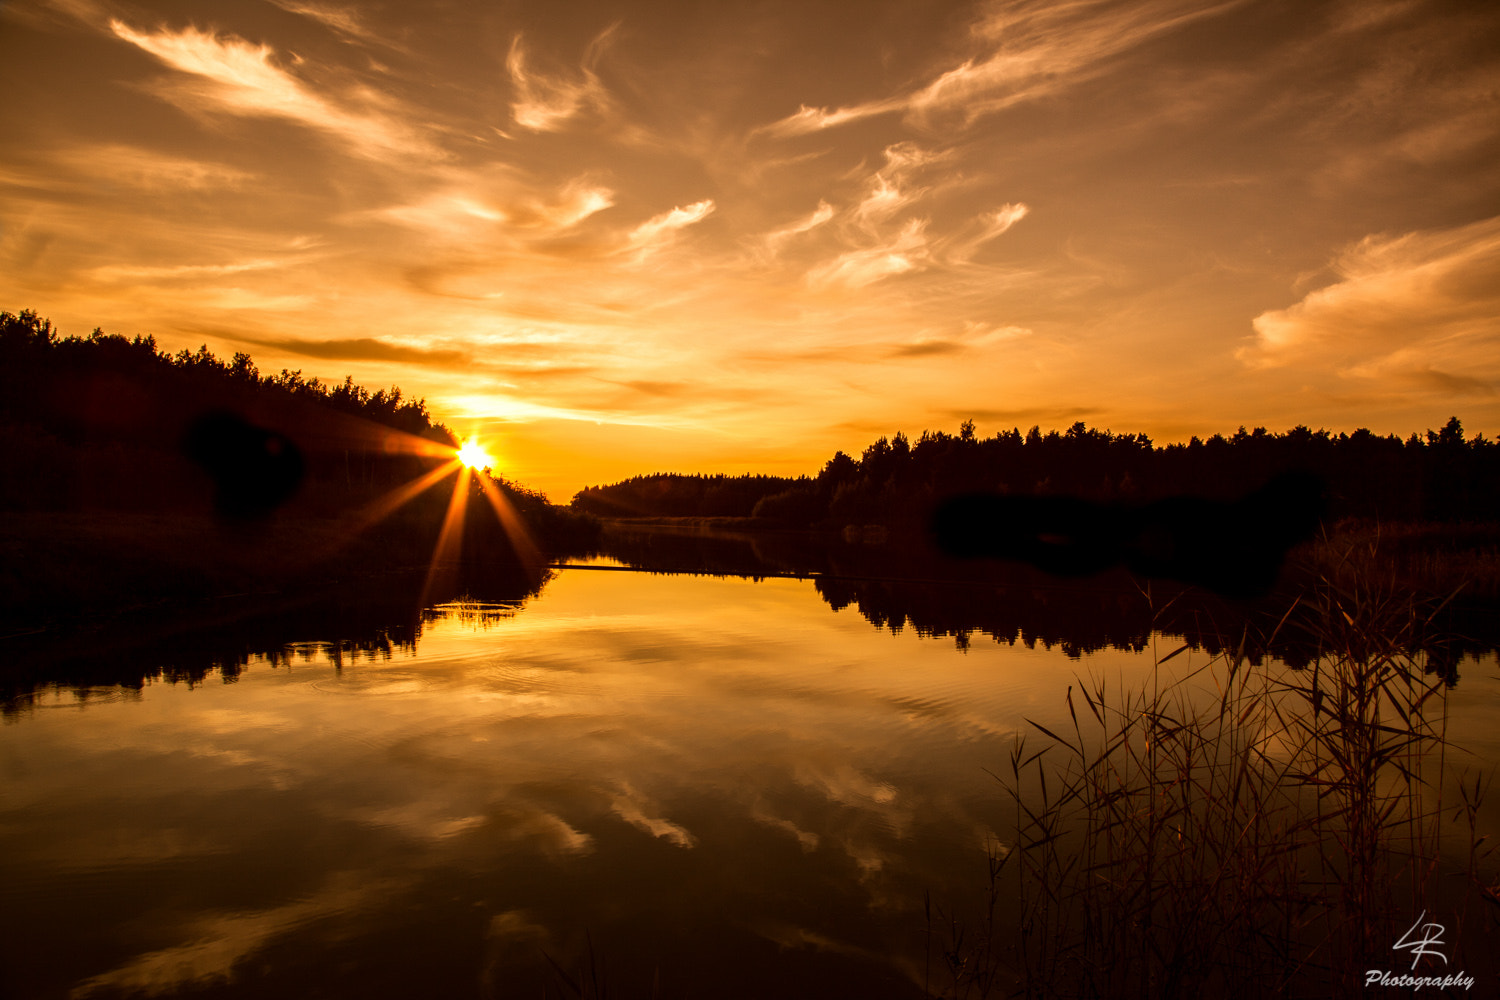 Photograph Sunset in Taivassalo by Leo Rantala on 500px